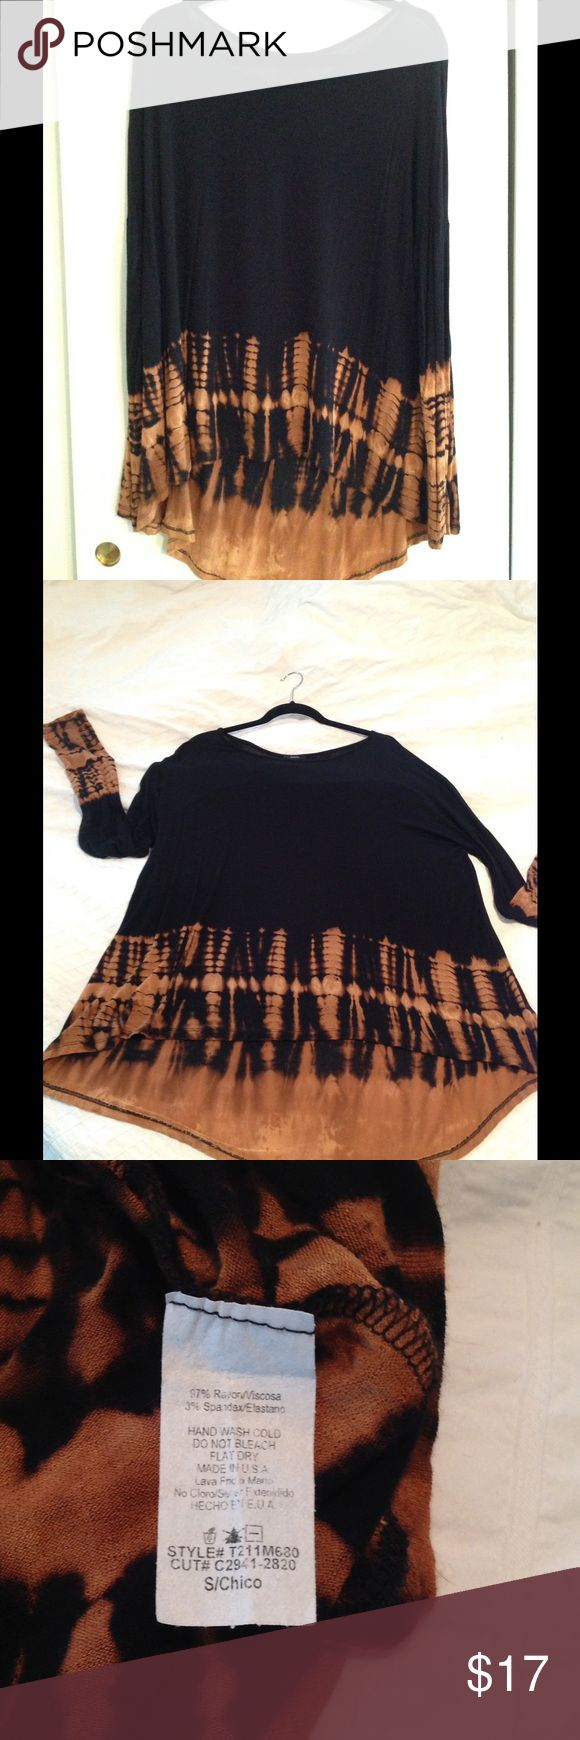 Long sleeve loose fitting top Long sleeve loose fitting top, thin stretchy material with tie dye on lower half of shirt, flows longer in back. Size small but fits like a medium Tops Tees - Long Sleeve